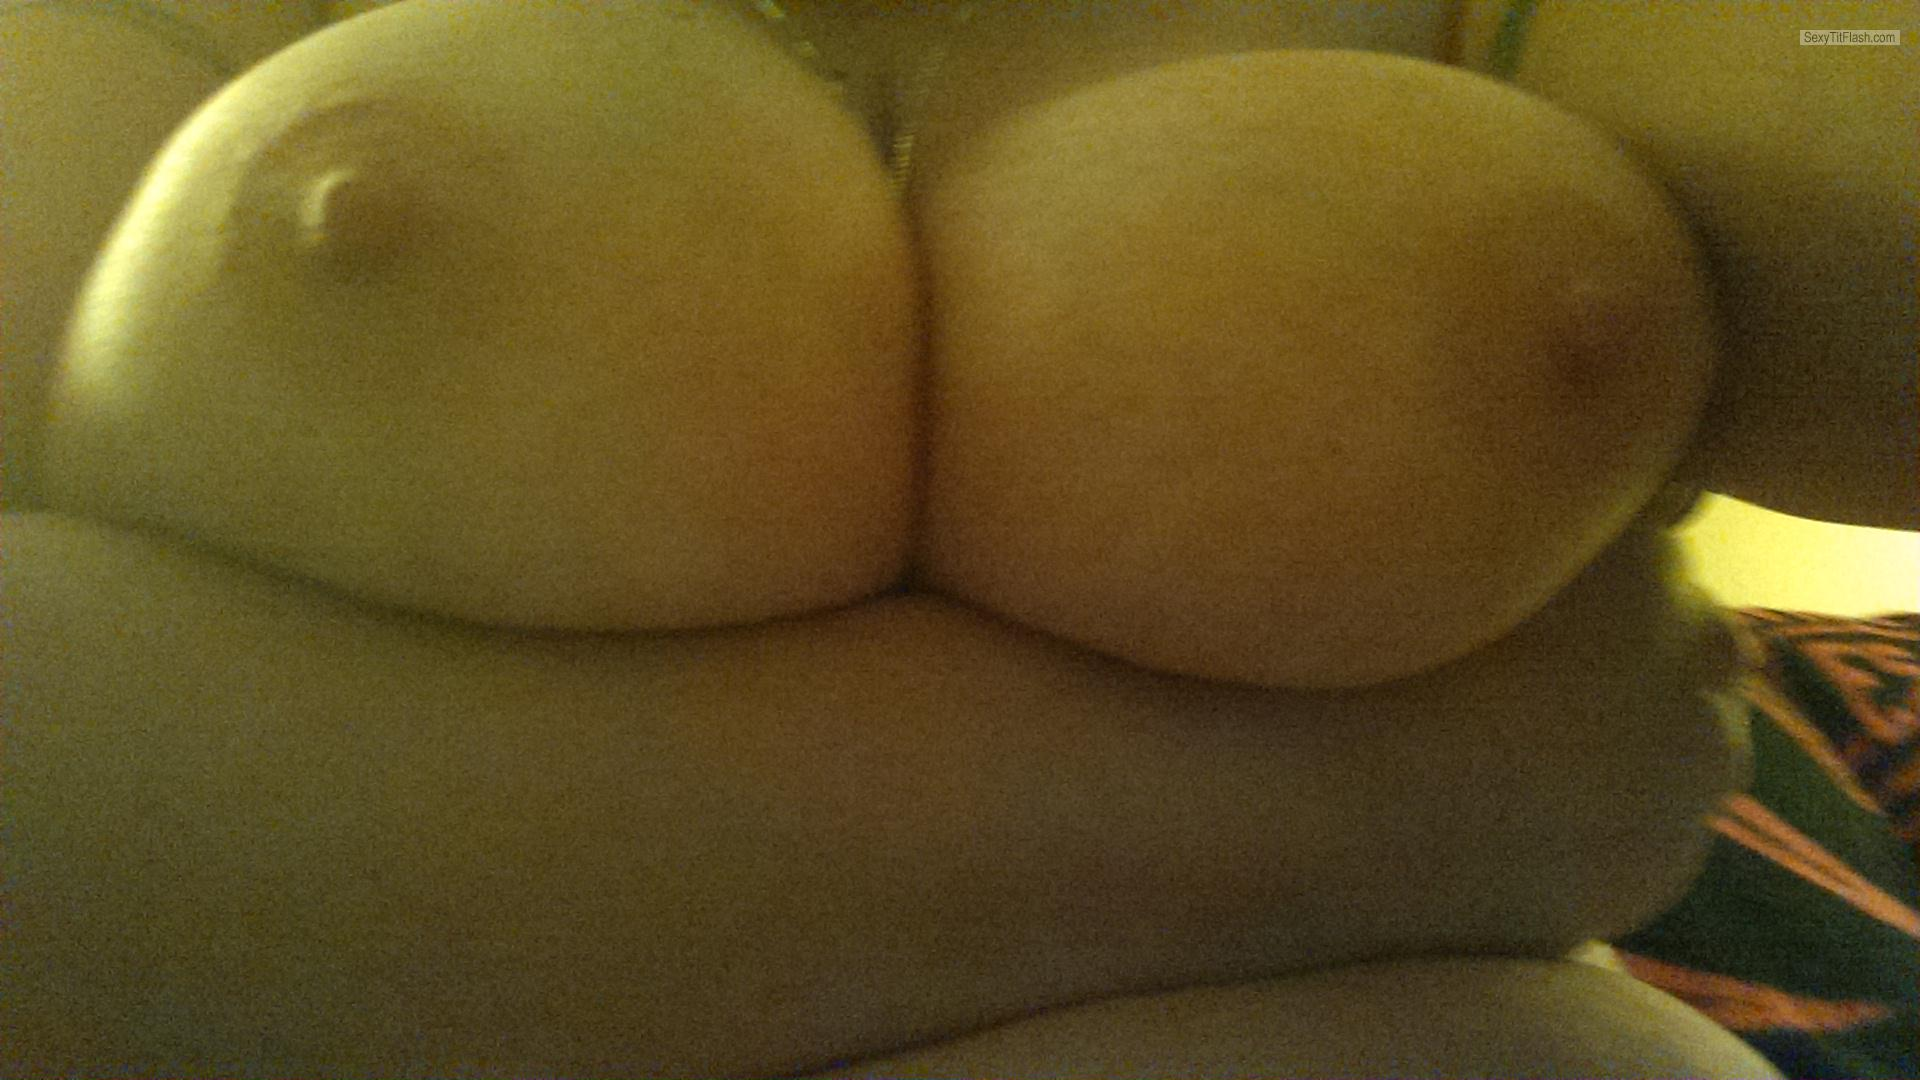 My Big Tits Selfie by Willow Girl